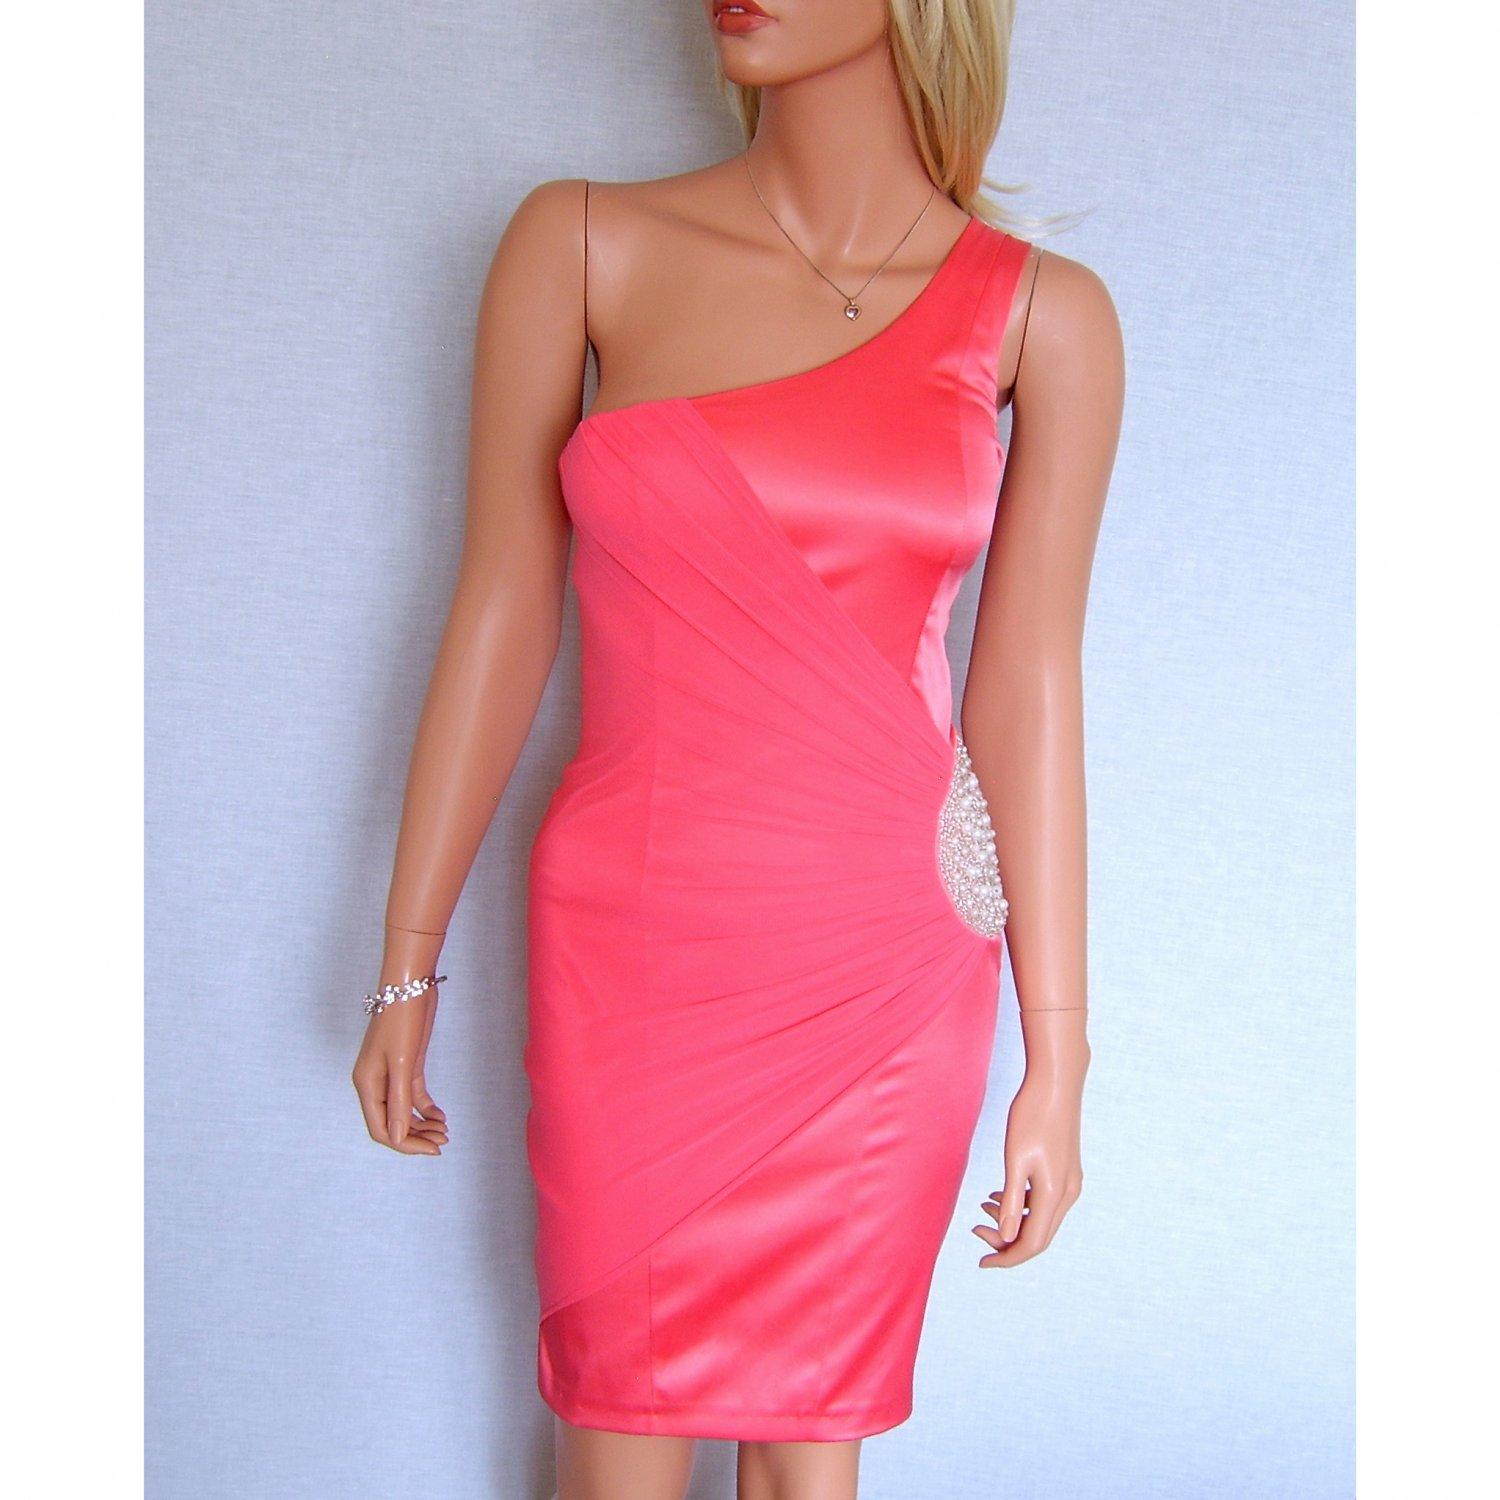 ELISE RYAN TOPSHOP CORAL PEARL BEADED EVENING BODYCON MINI COCKTAIL PARTY PROM DRESS UK 14, US 10